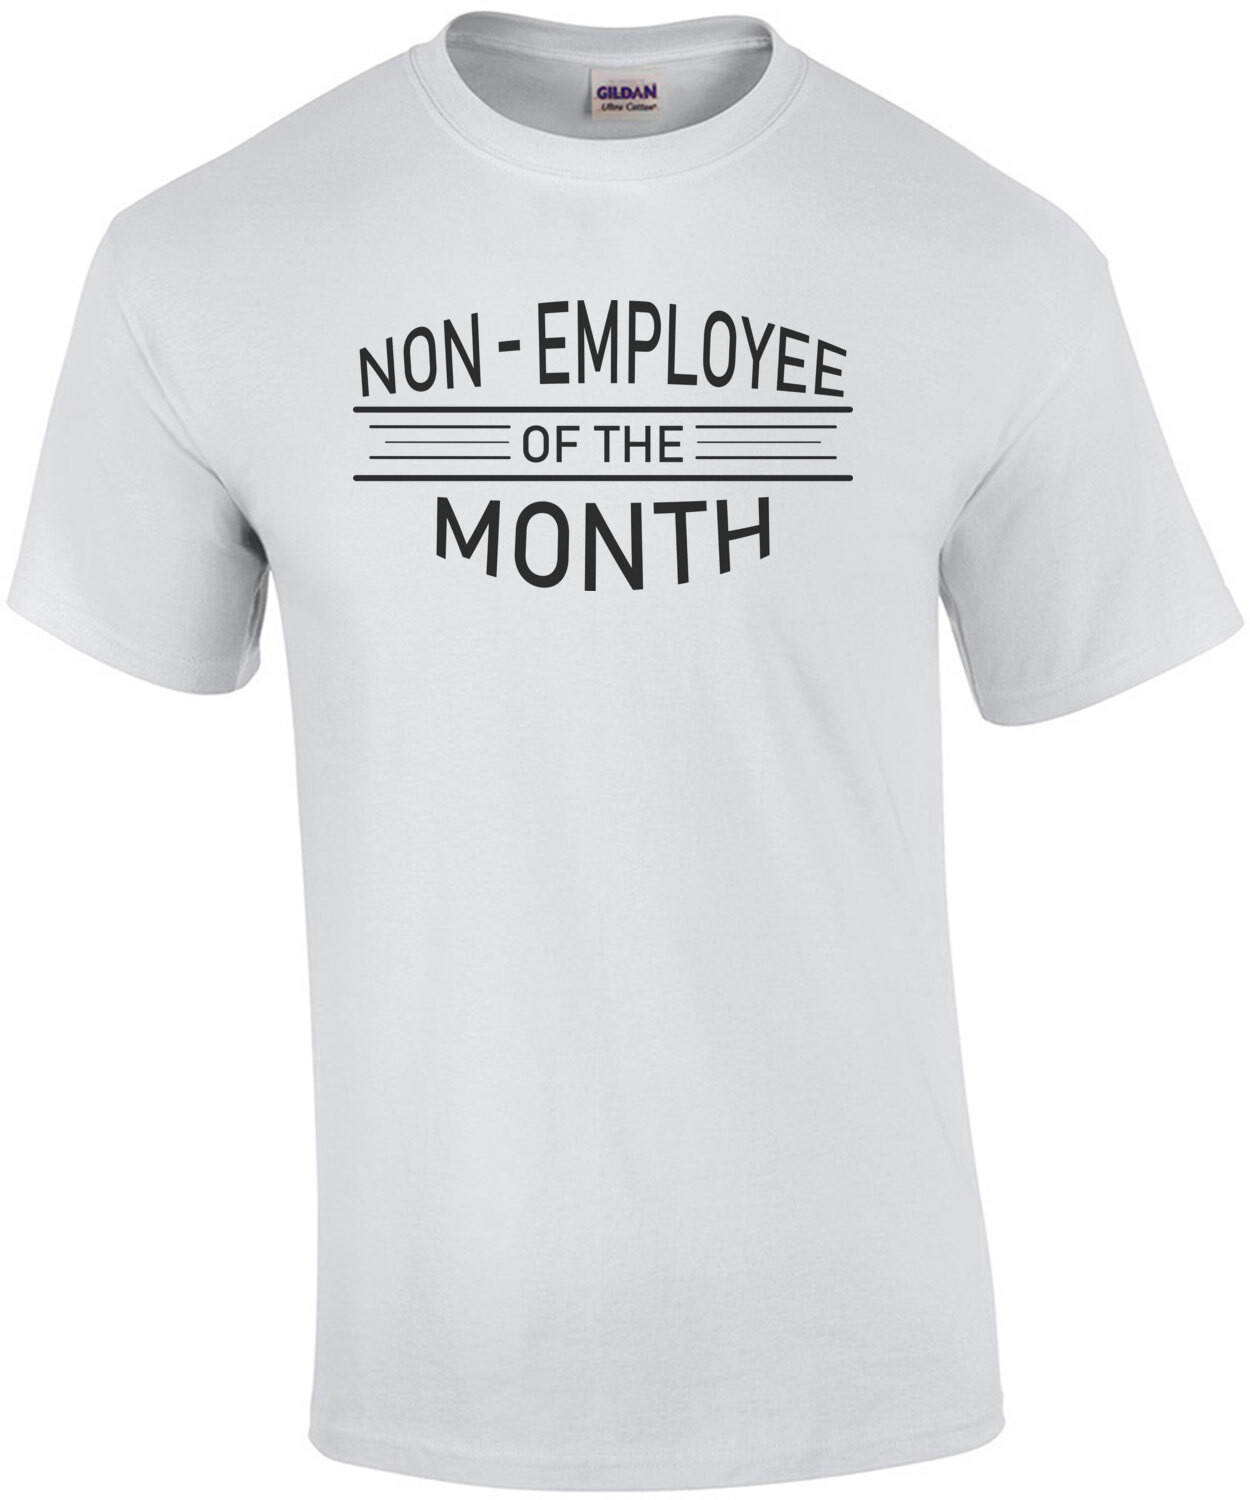 Non-Employee of the month - Covid-19 coronavirus t-shirt